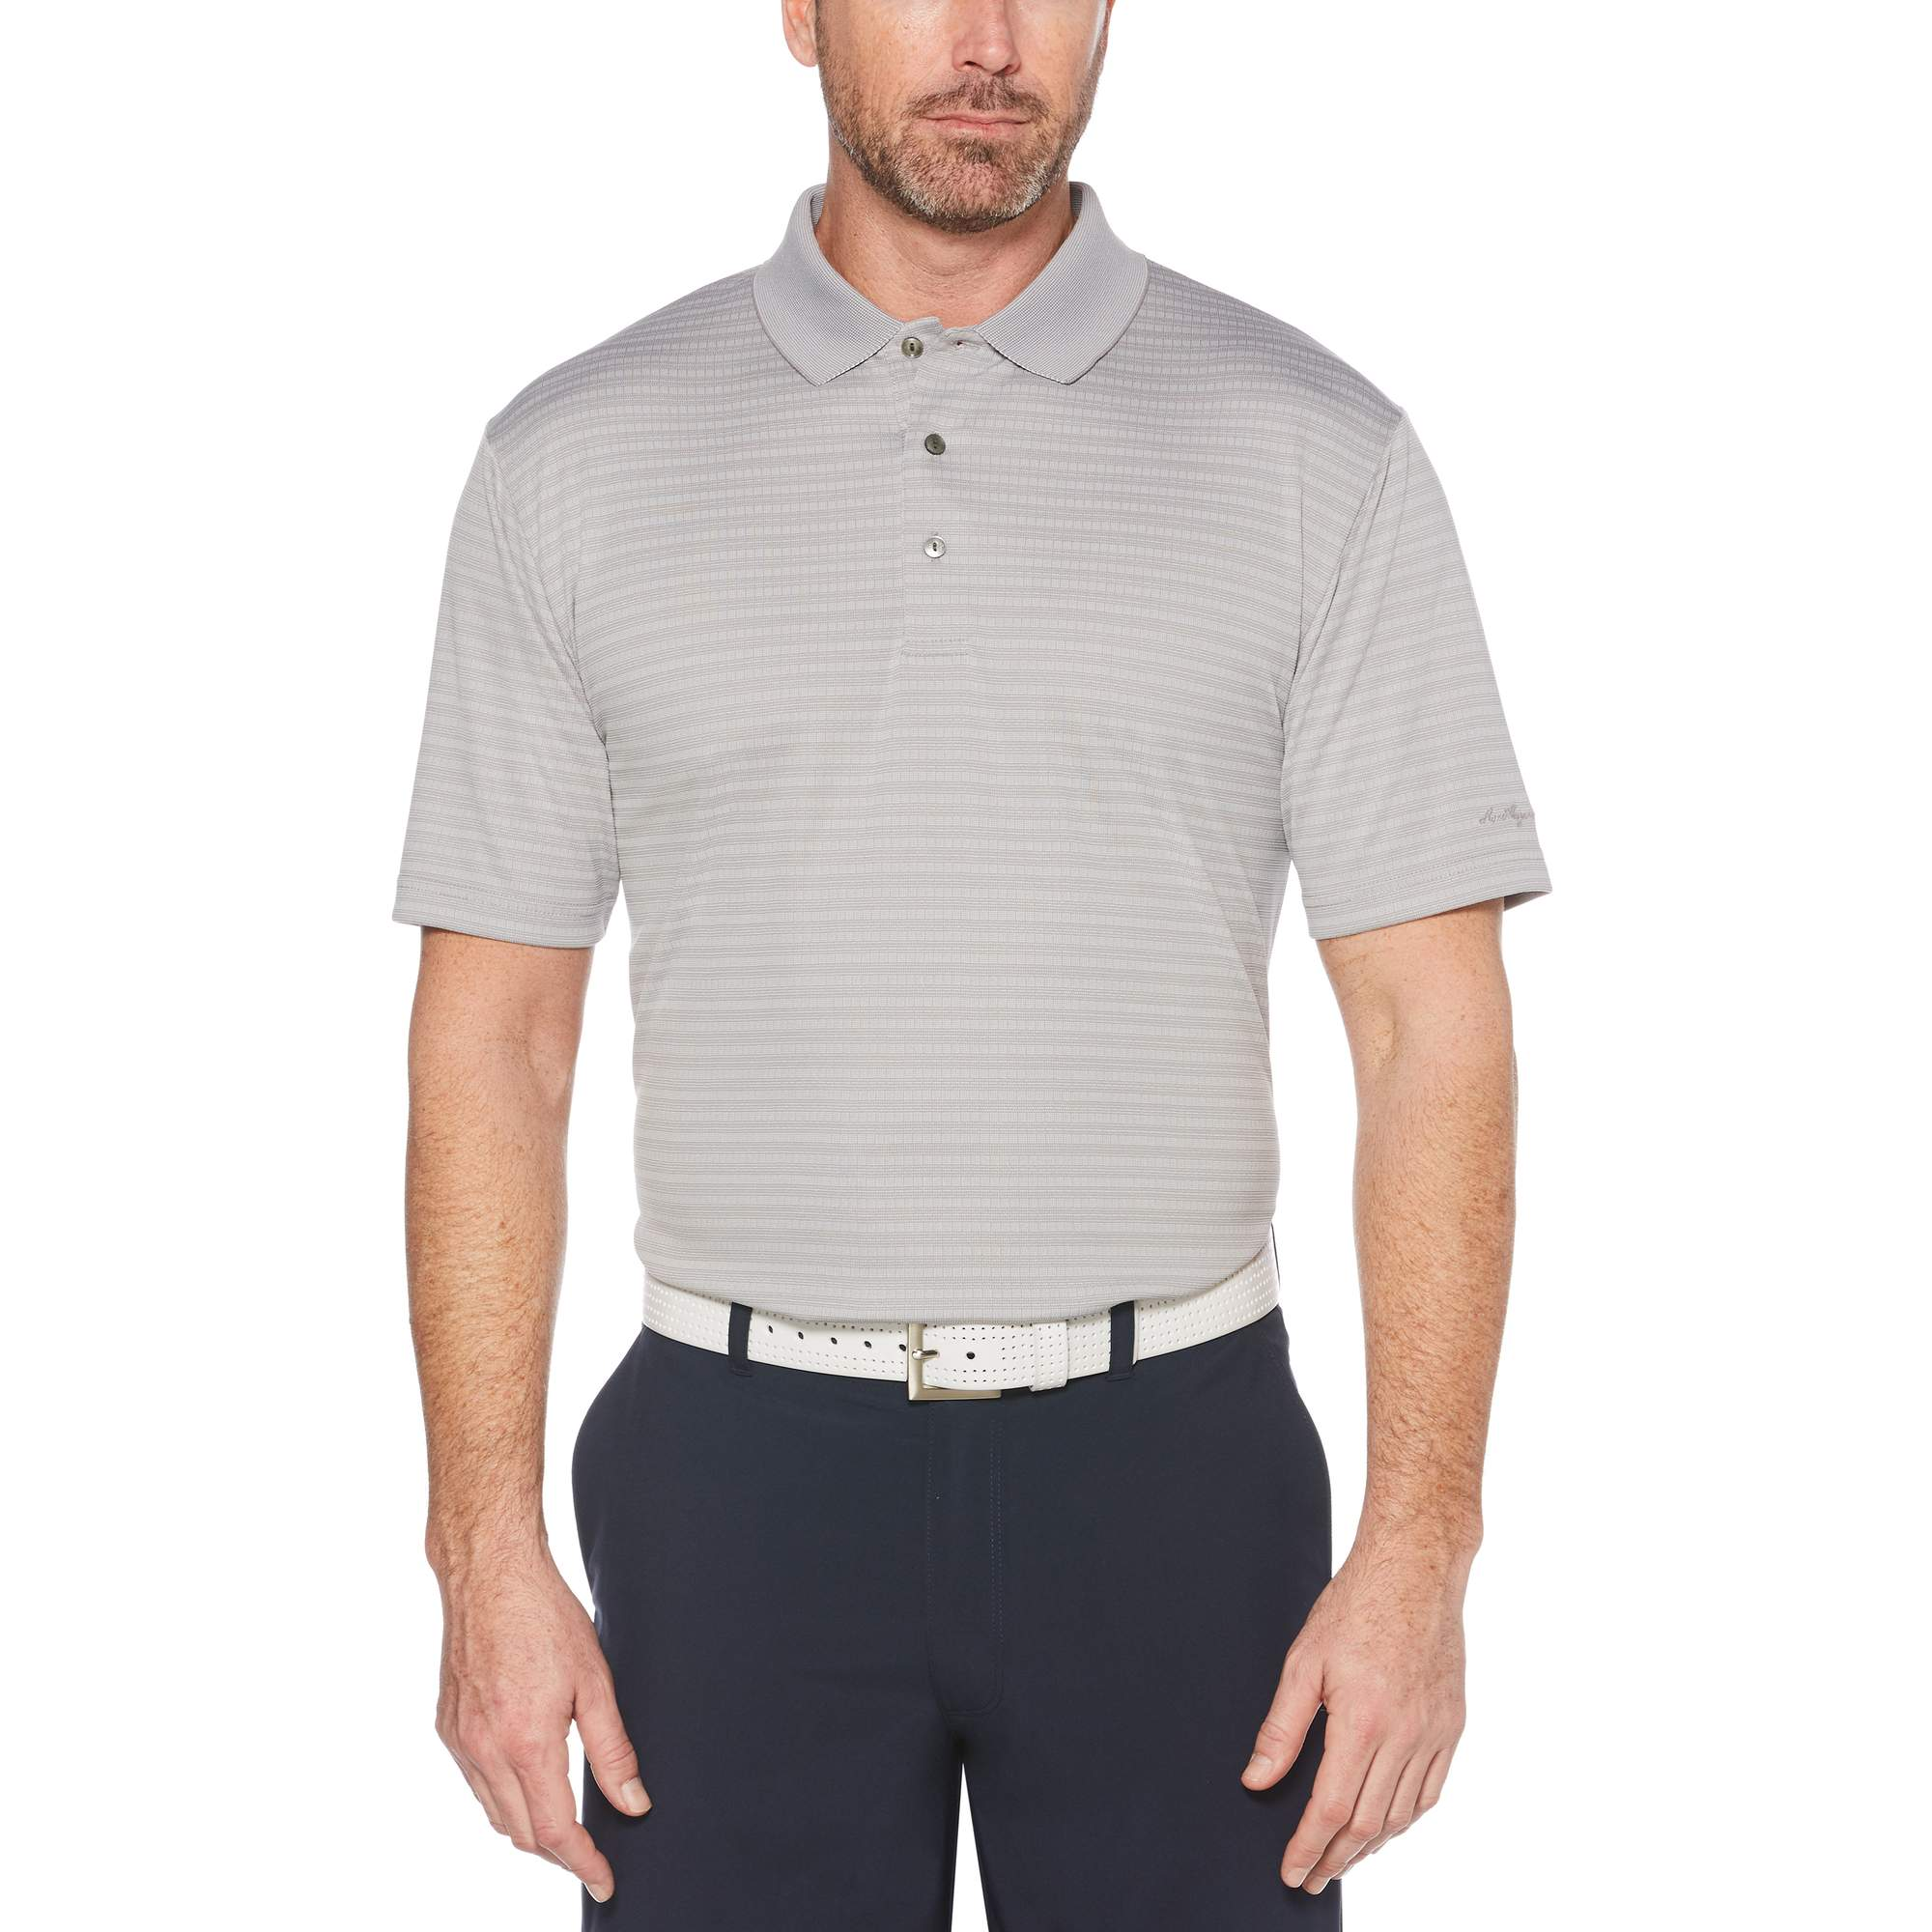 Men's Performance Short Sleeve Jacquard Golf Polo